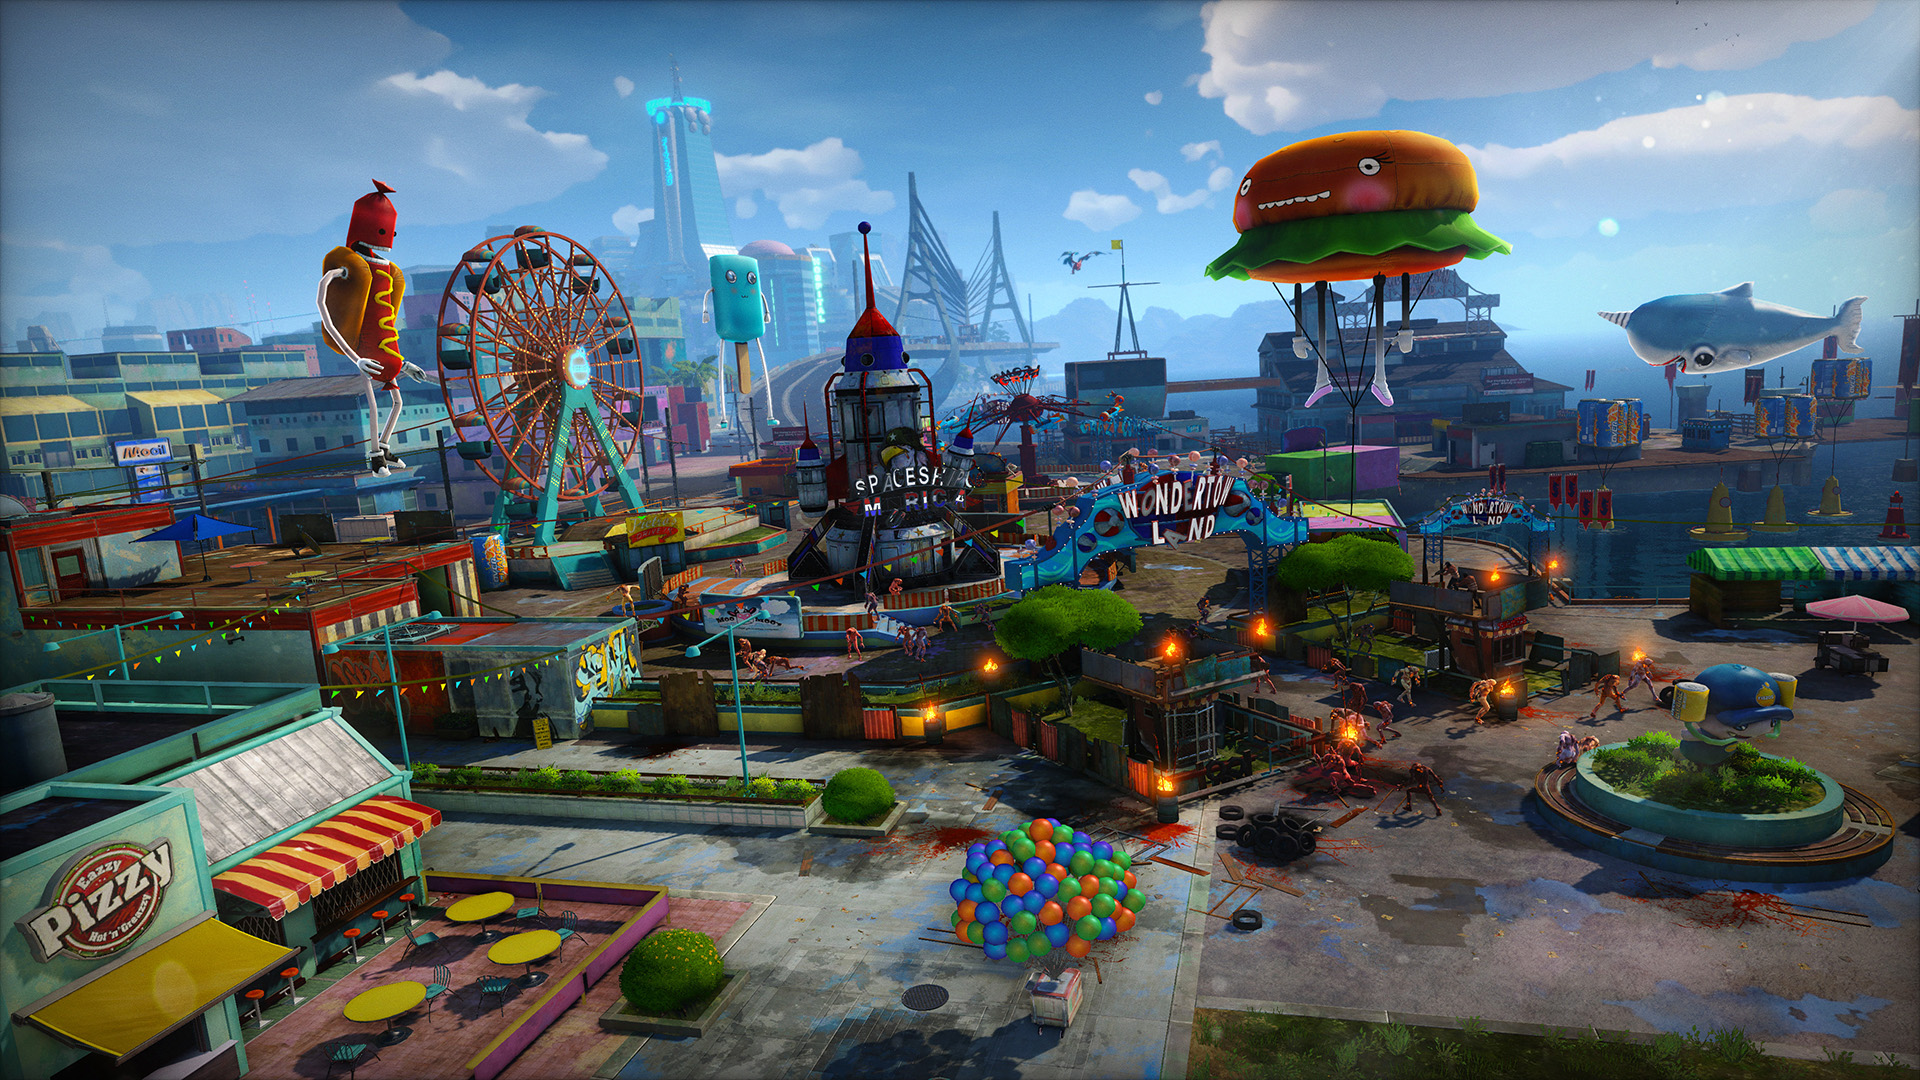 Artistry in Games sunset-overdrive-wondertown-environment E3 - Reintroducing Gamers To Colors Features  e3 Colors In Art